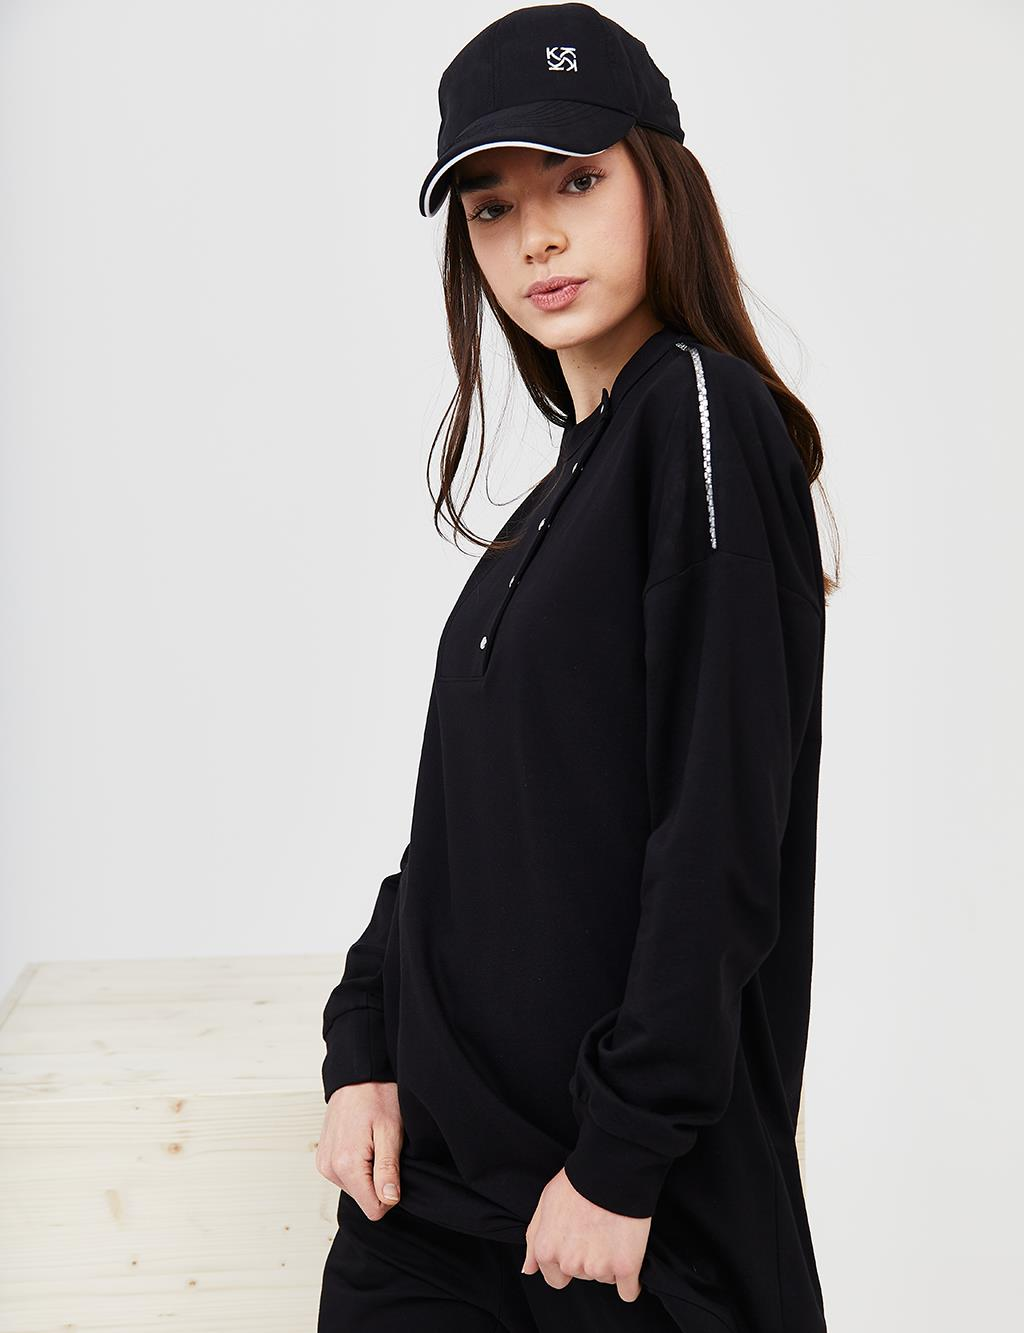 KYR Half Placket Sweatshirt B21 70011 Black